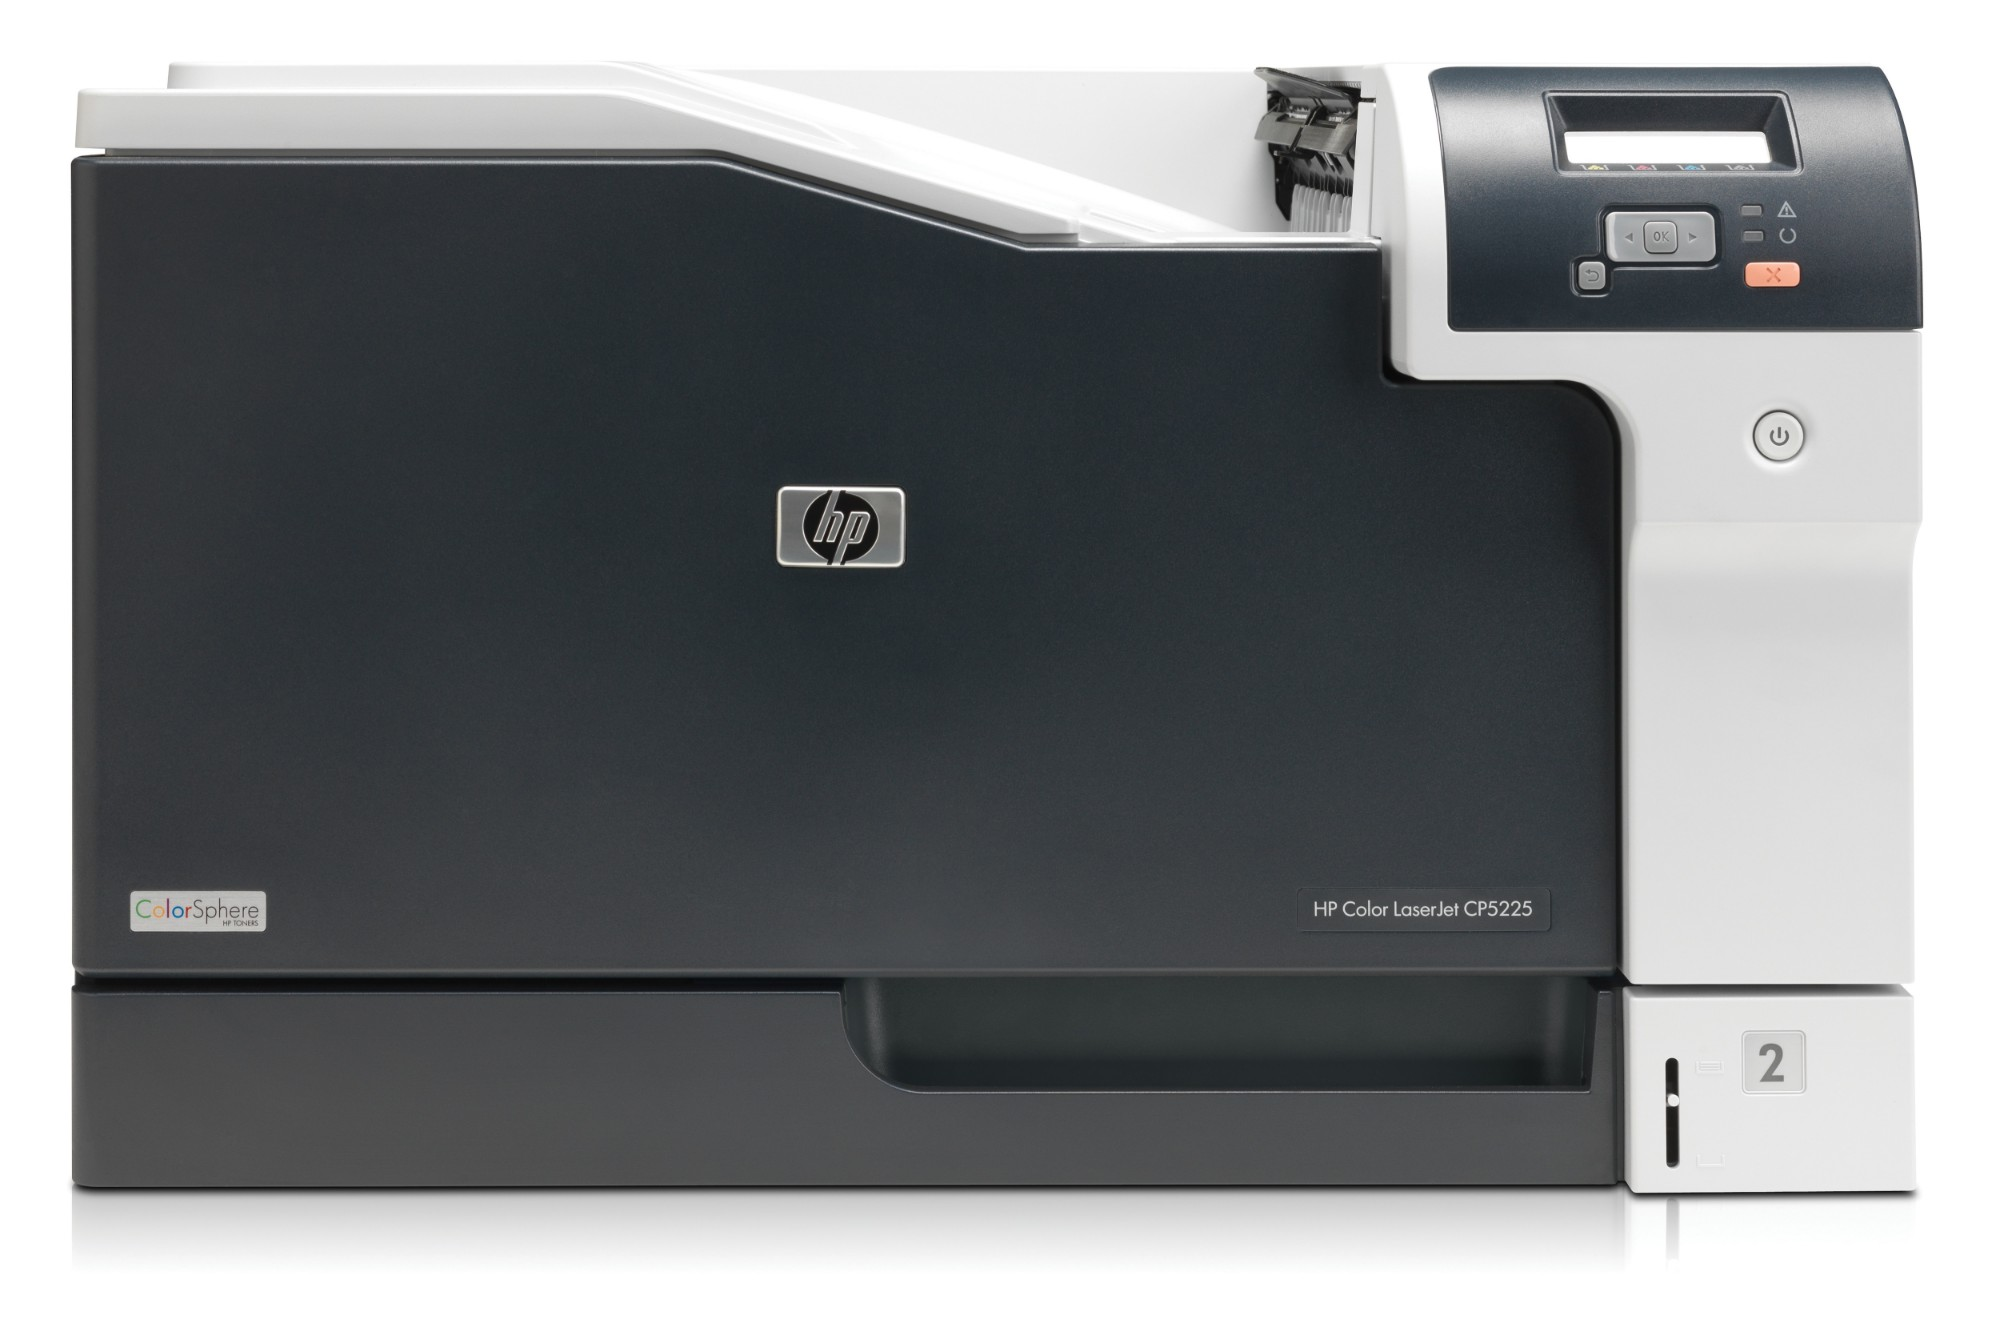 HP LaserJet Color Professional CP5225n Printer Kleur 600 x 600 DPI A3